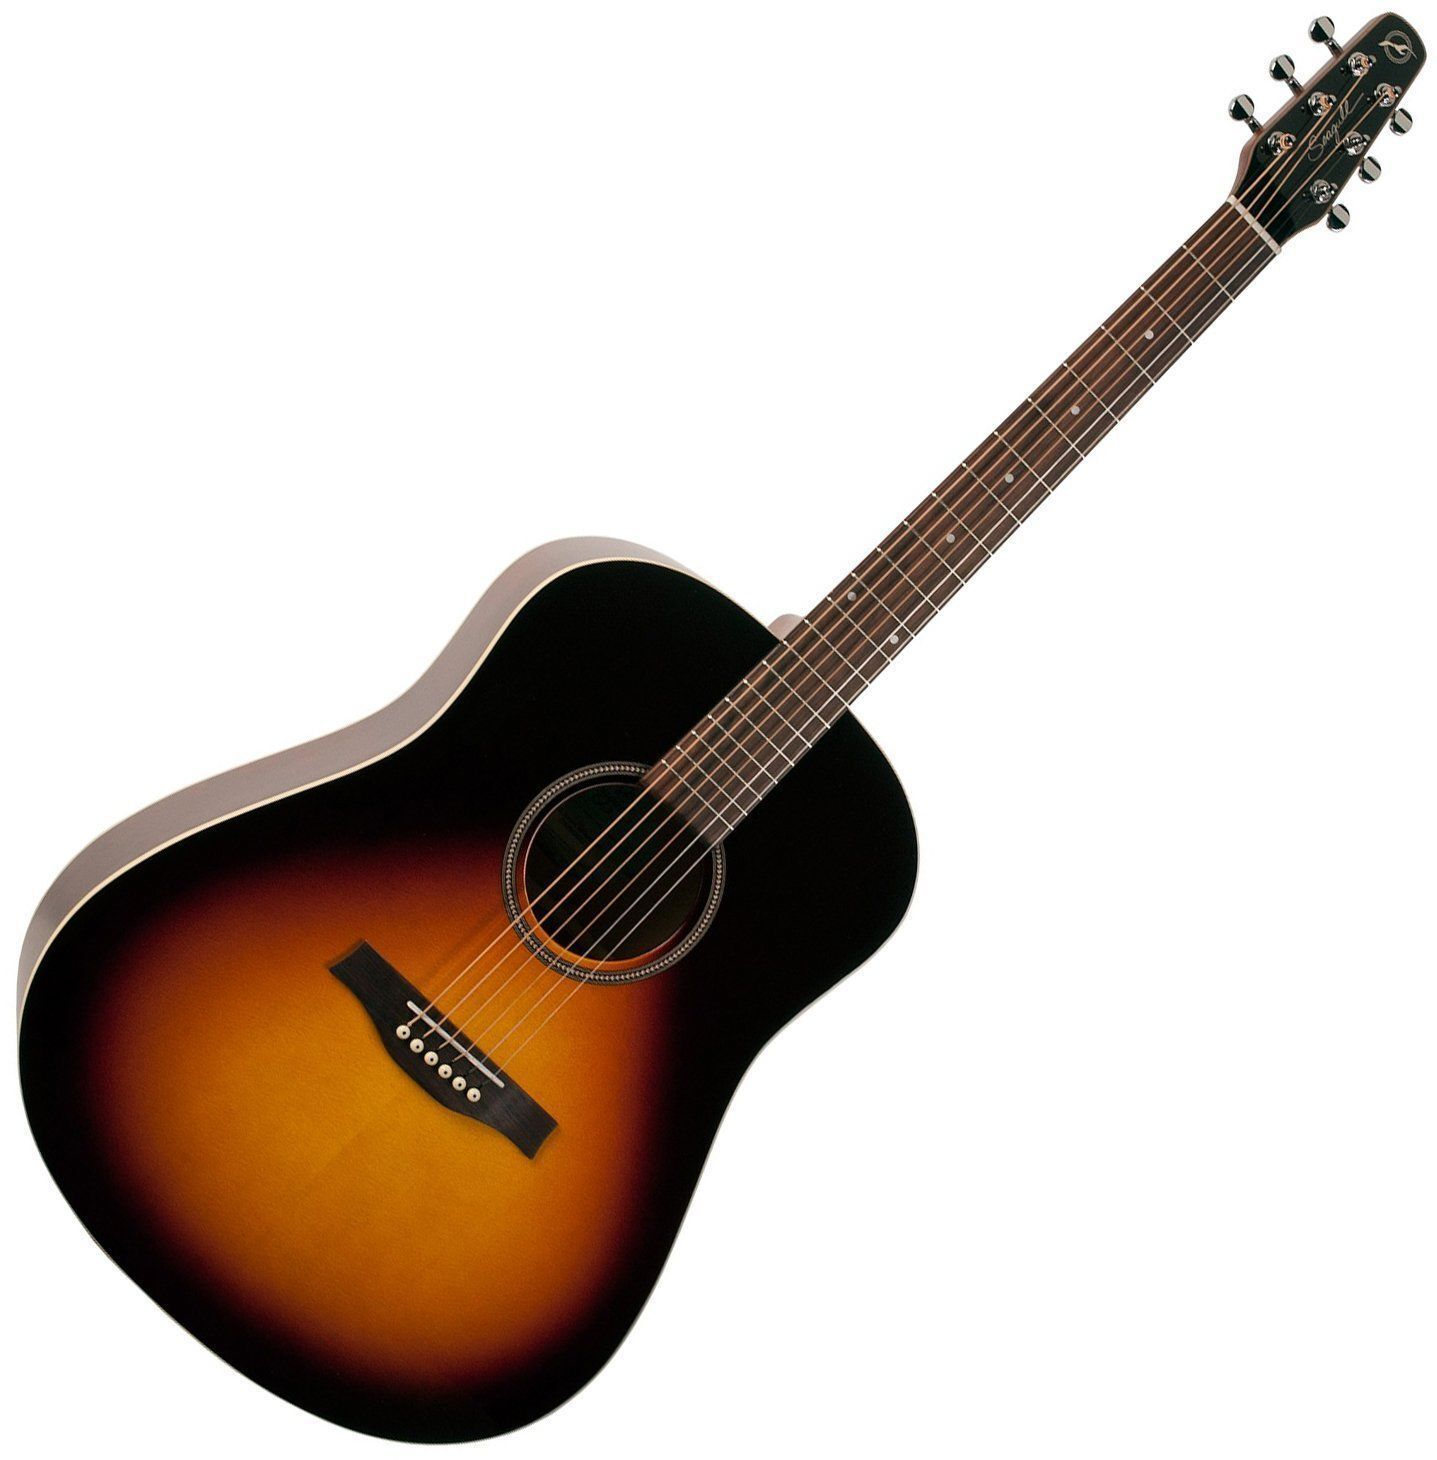 Cheap Acoustic Guitar : top 10 cheap acoustic guitars ebay ~ Vivirlamusica.com Haus und Dekorationen